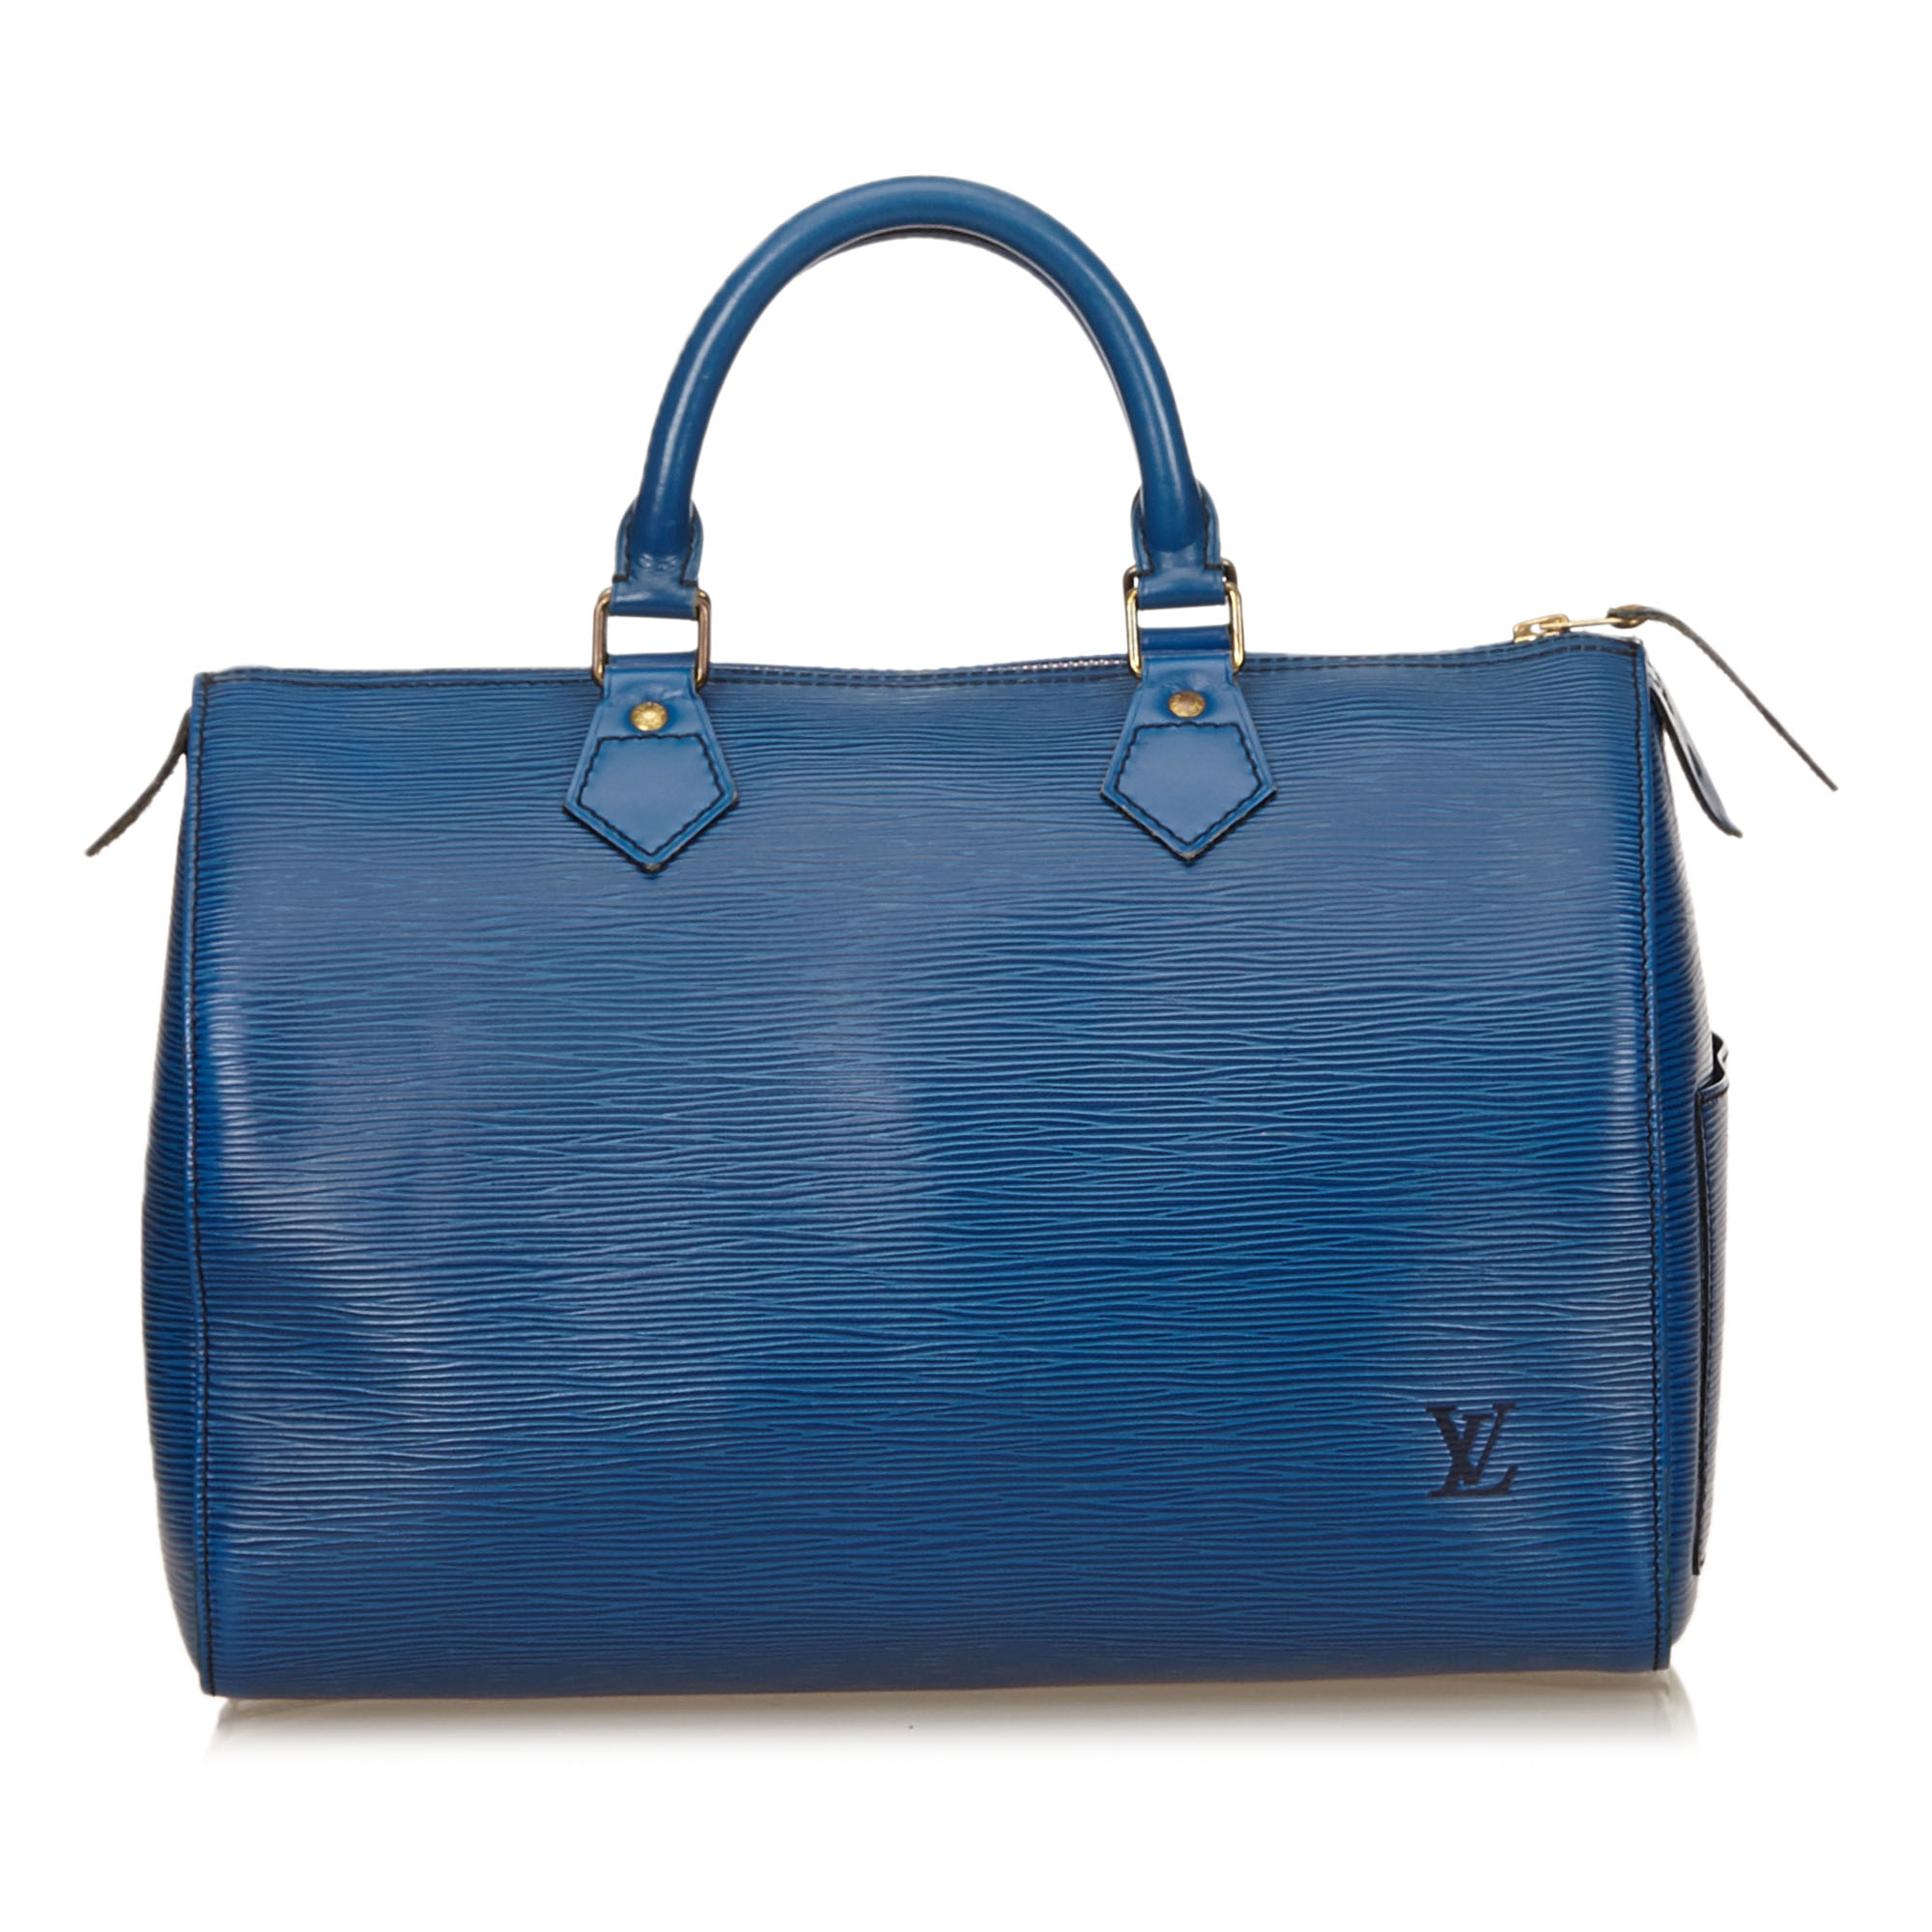 Louis Vuitton Toiedo Blue Epi Leather Speedy 30